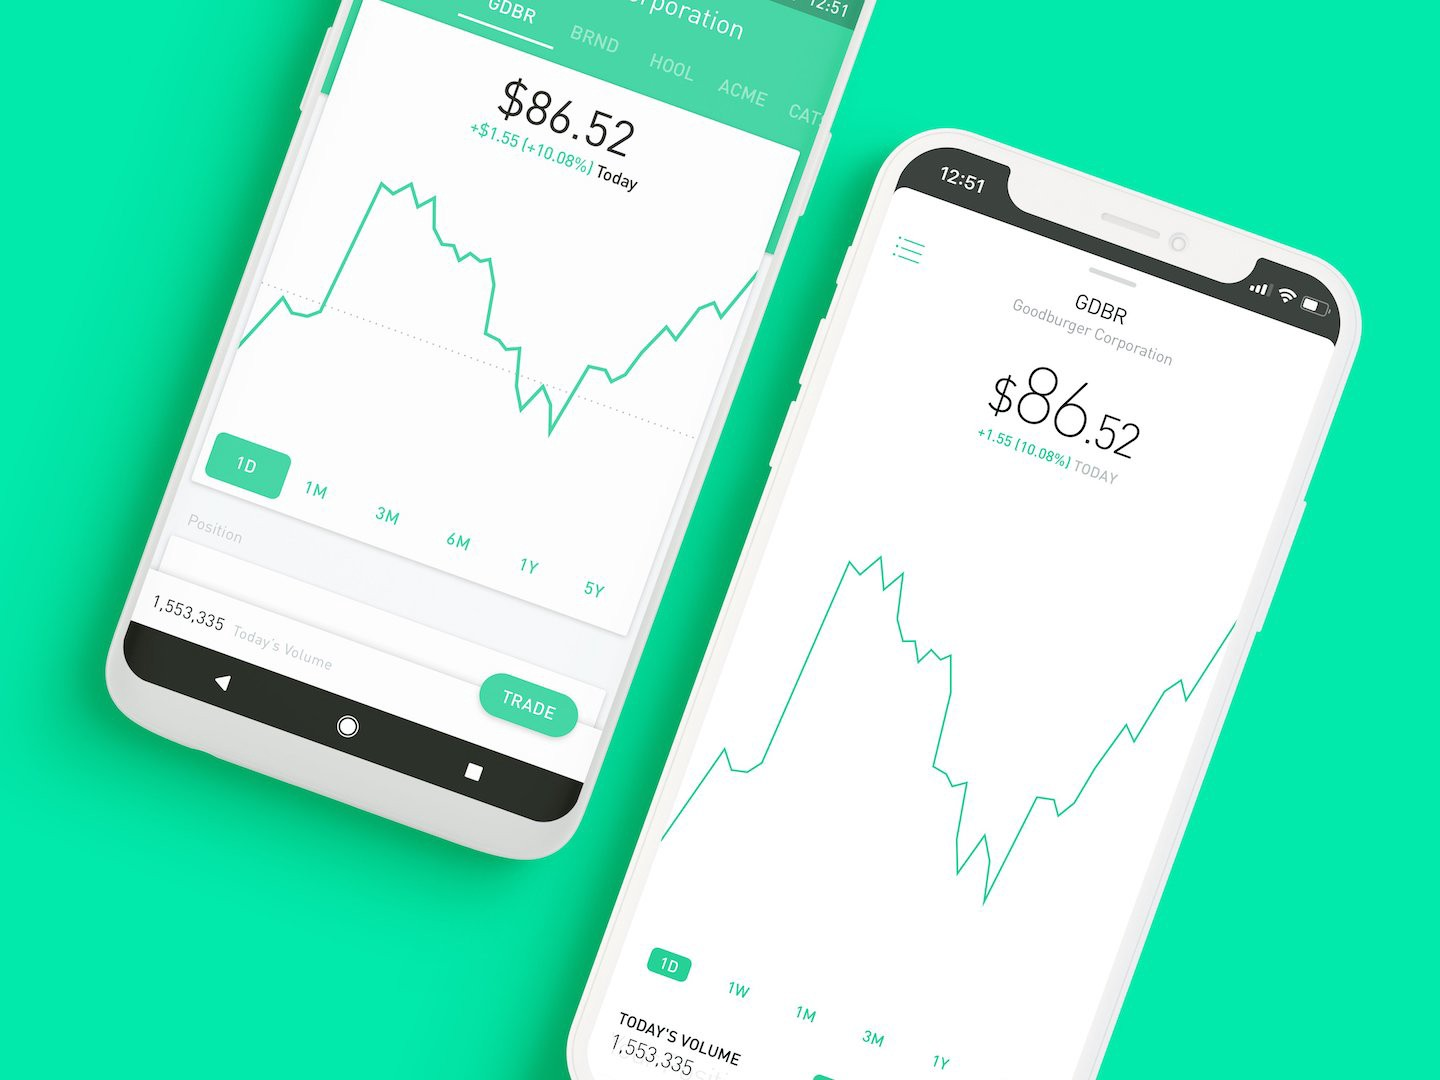 Size In Cm  Commission-Free Investing Robinhood